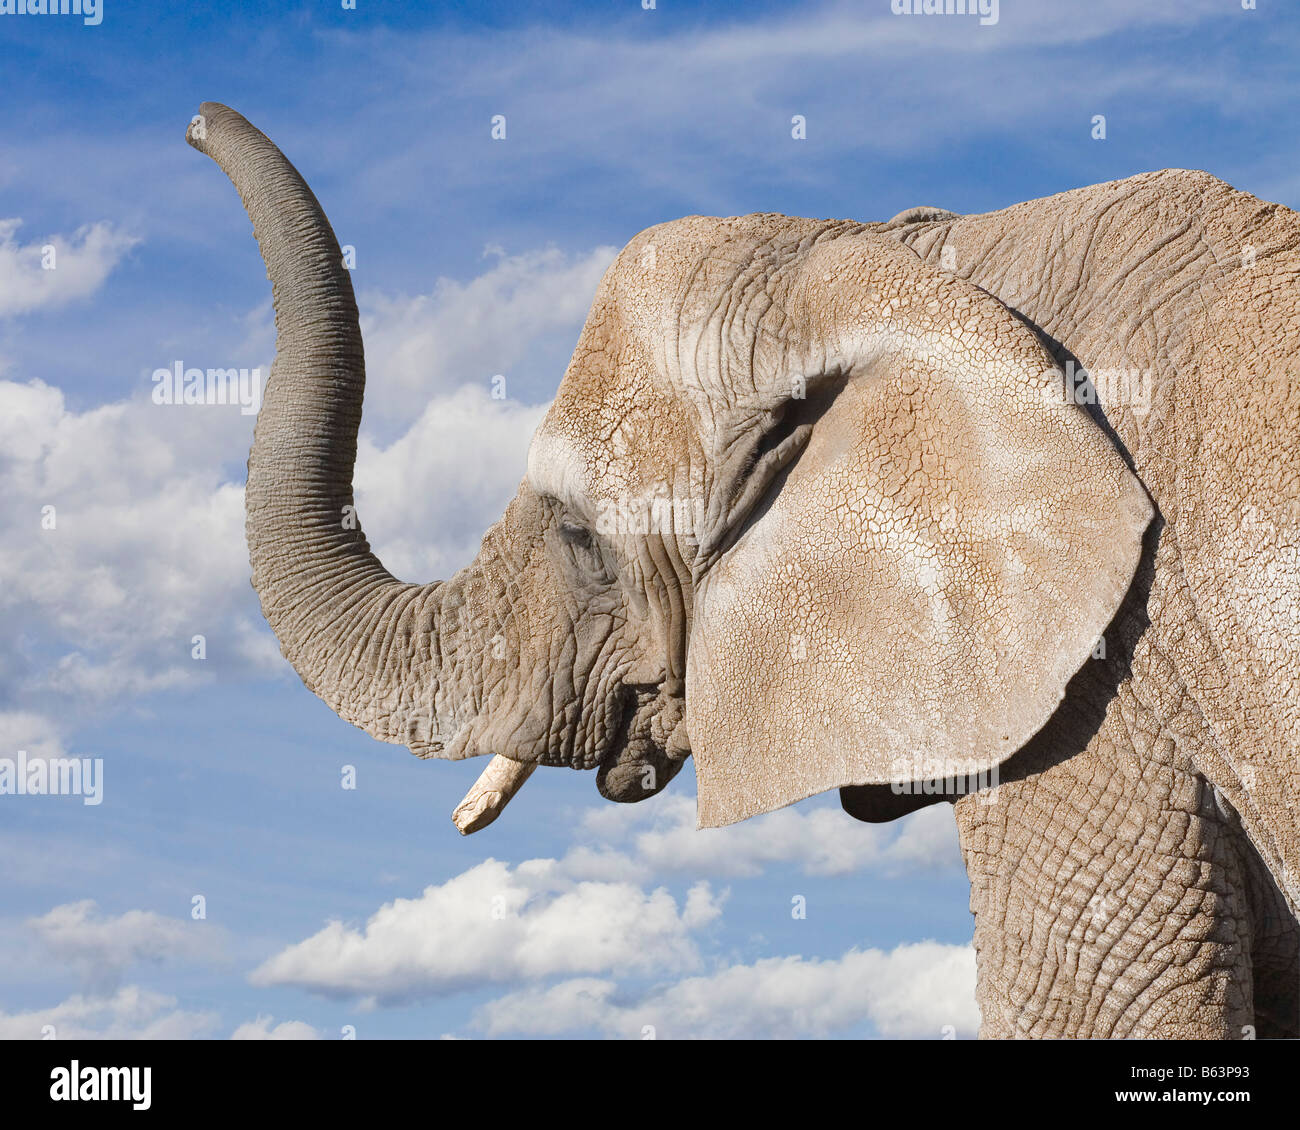 Profile of an old bull elephant raising his trunk against a blue sky with white clouds - Stock Image